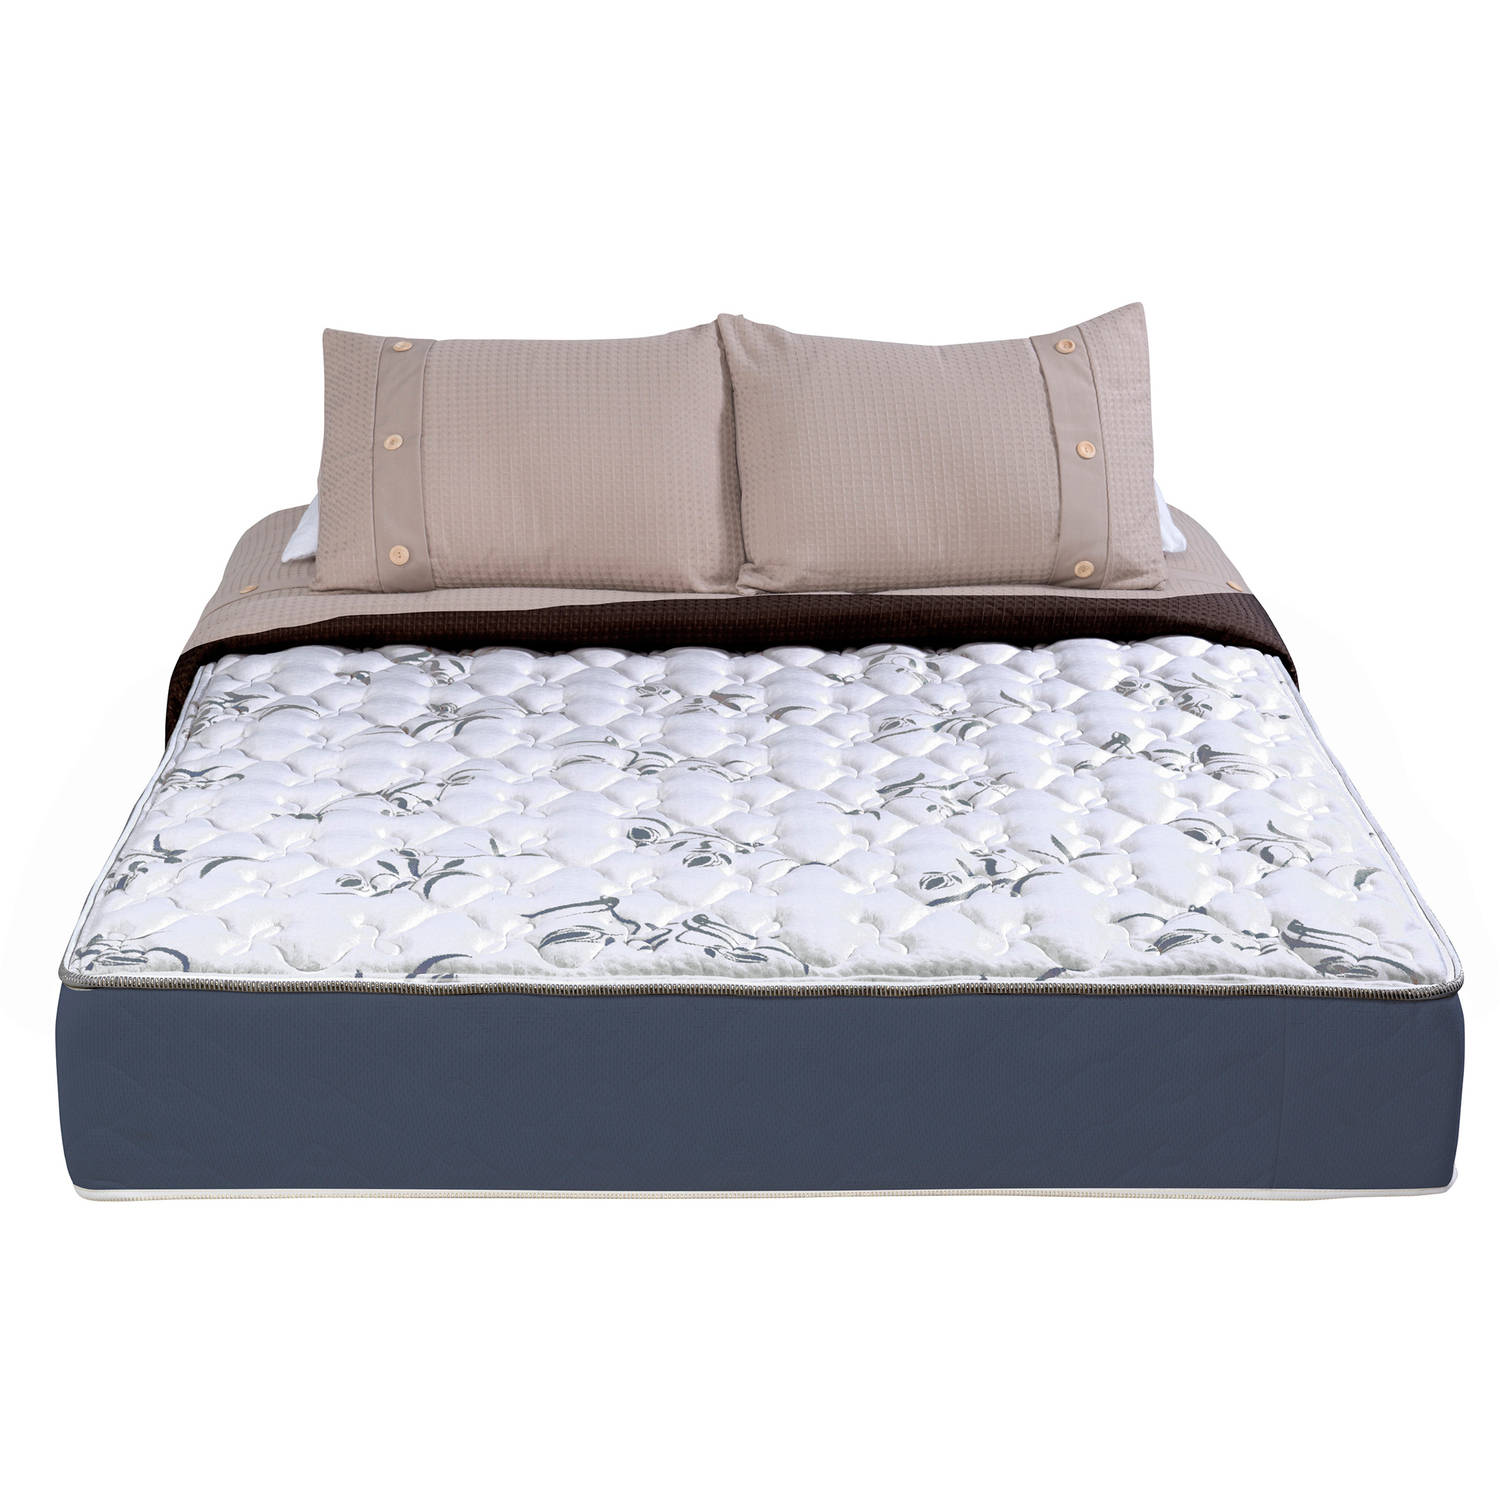 "Sleep Magic 10"" Mateo Mattress"